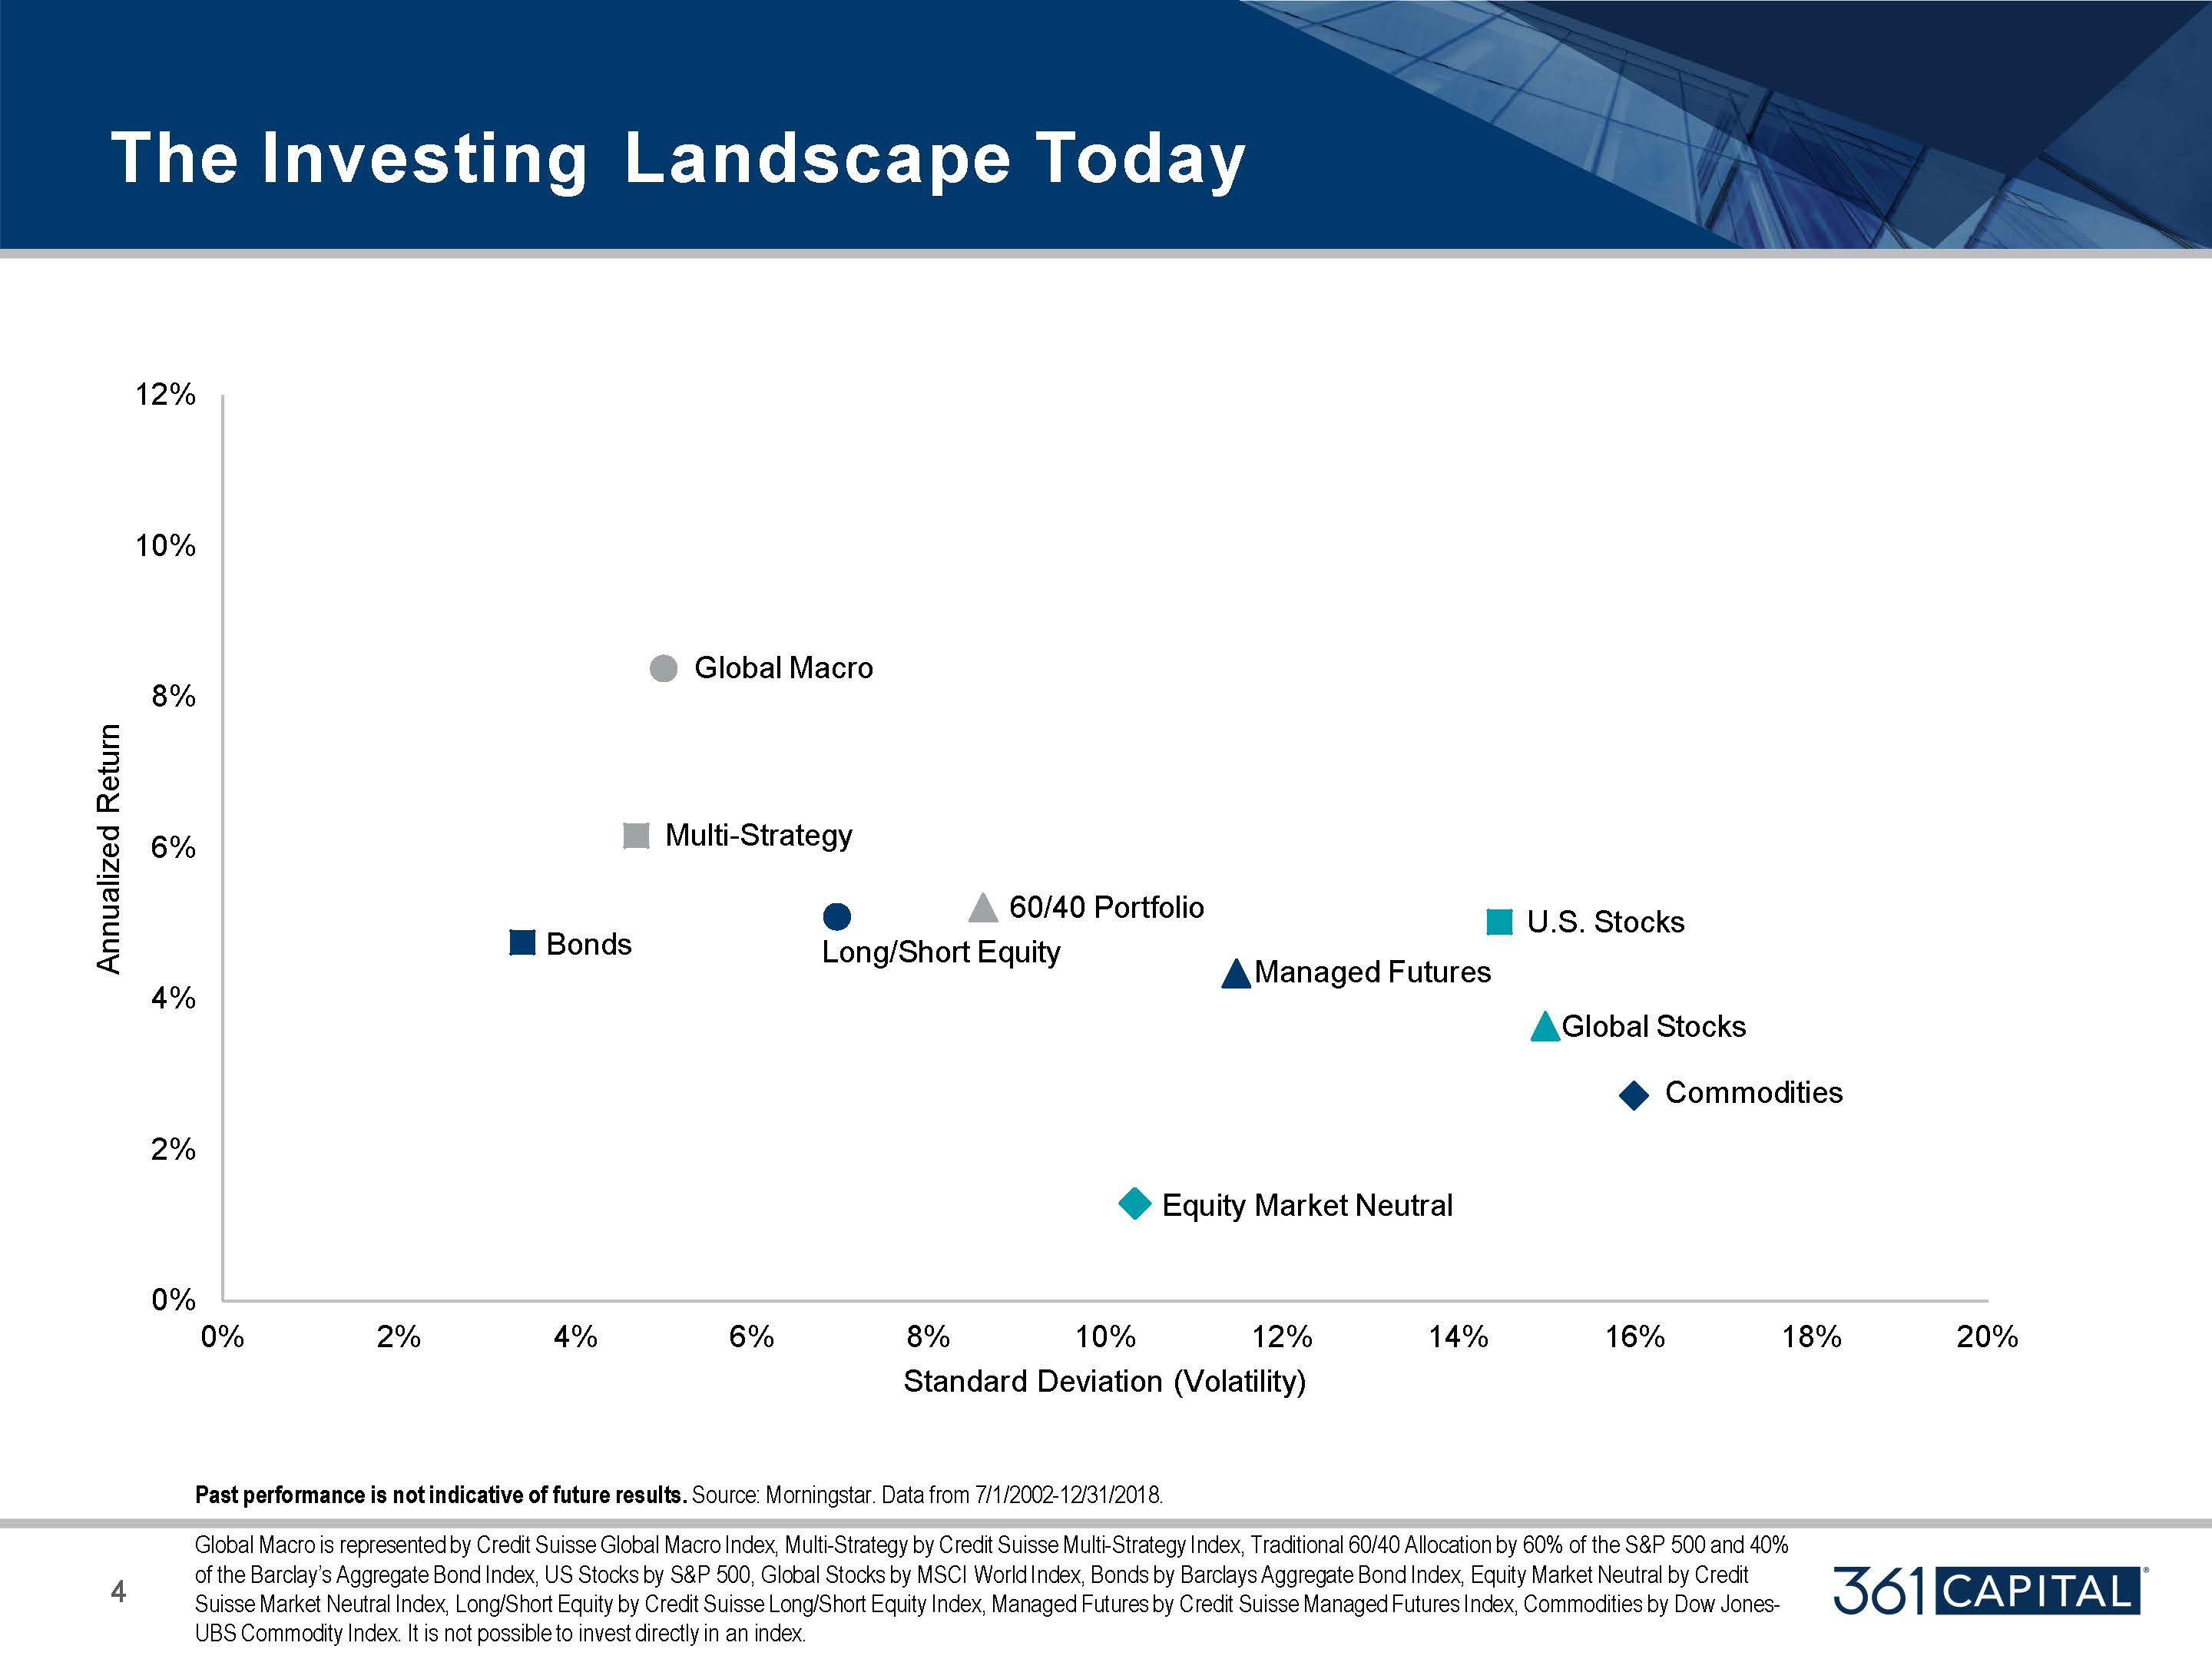 The investing landscape today